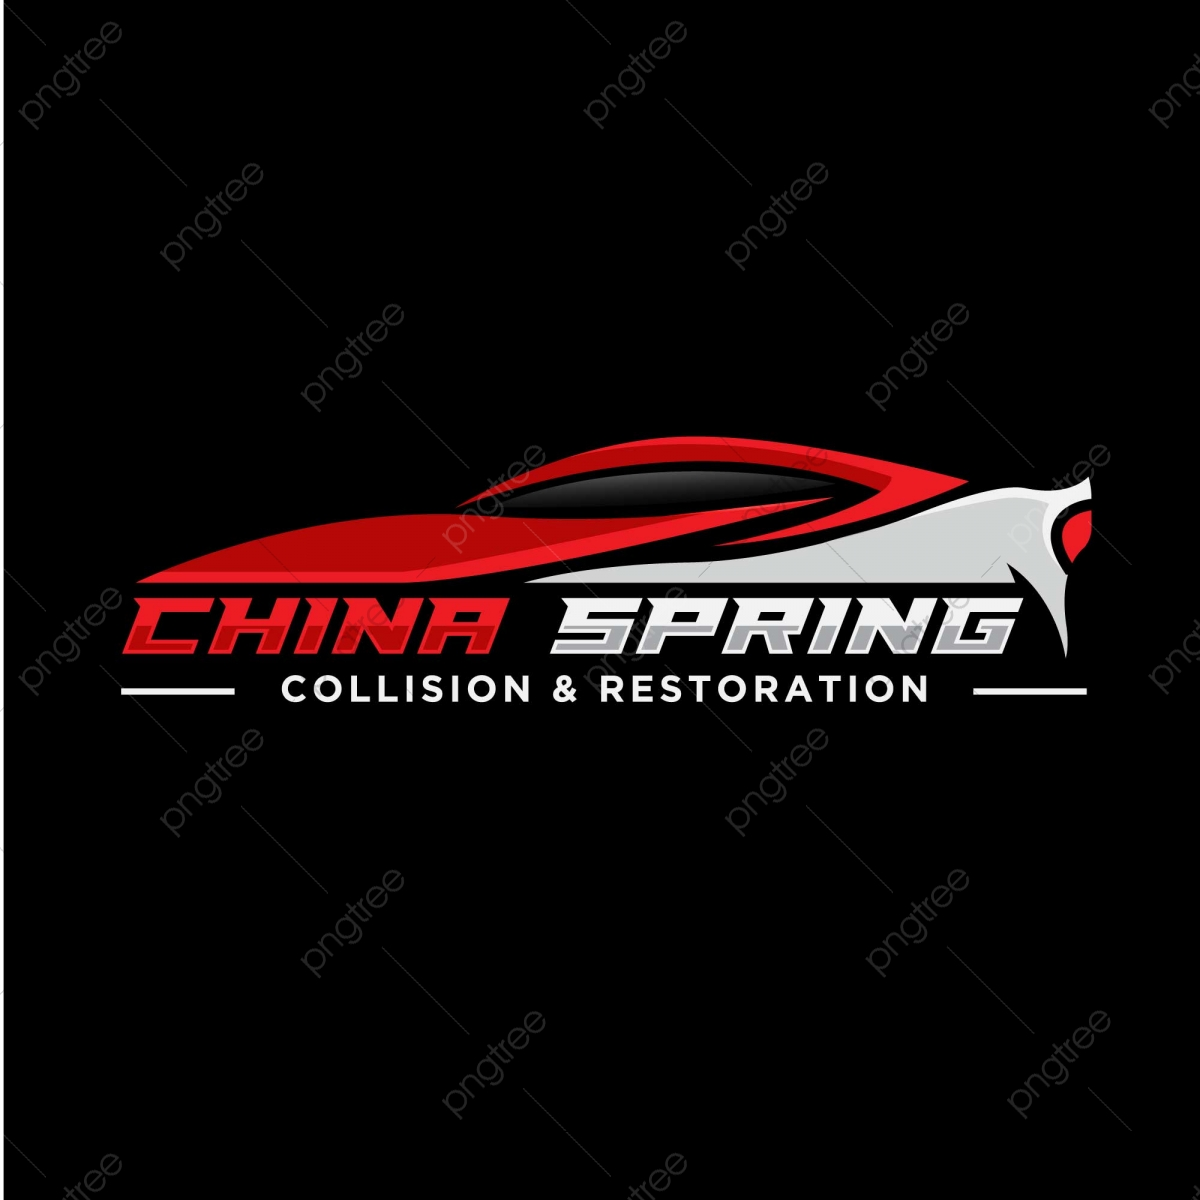 Sport Car Logo Design With Red Silhouette Template Download On Pngtree